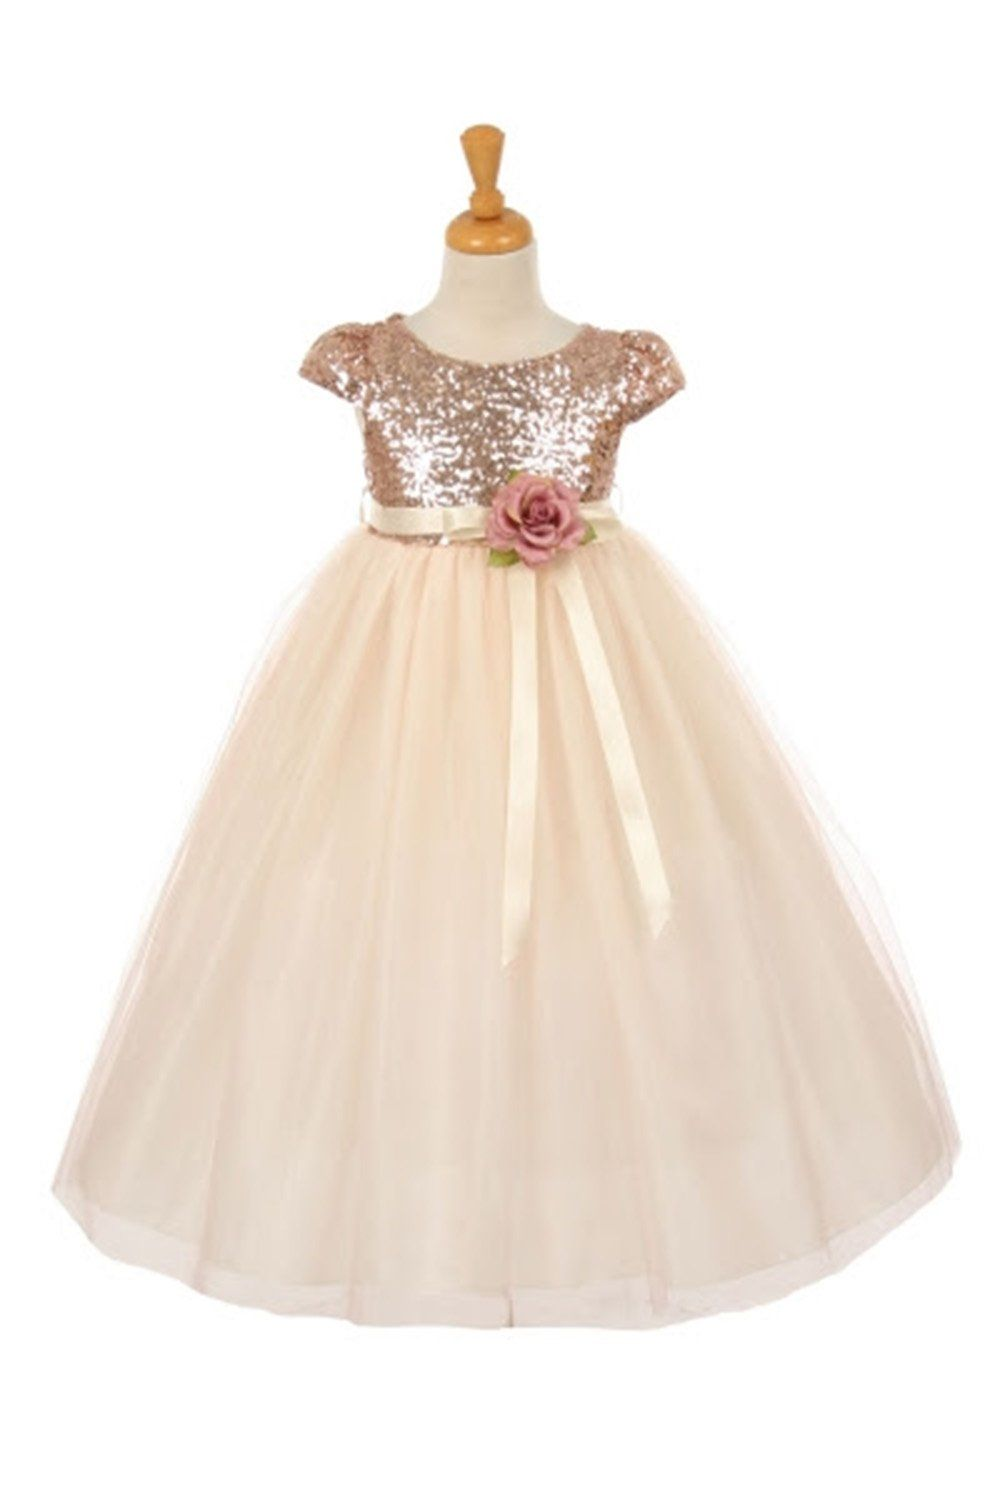 46c069a92ee Gold Short Sleeve Sequin Bodice   Tulle Skirt Flower Girl Dress ...